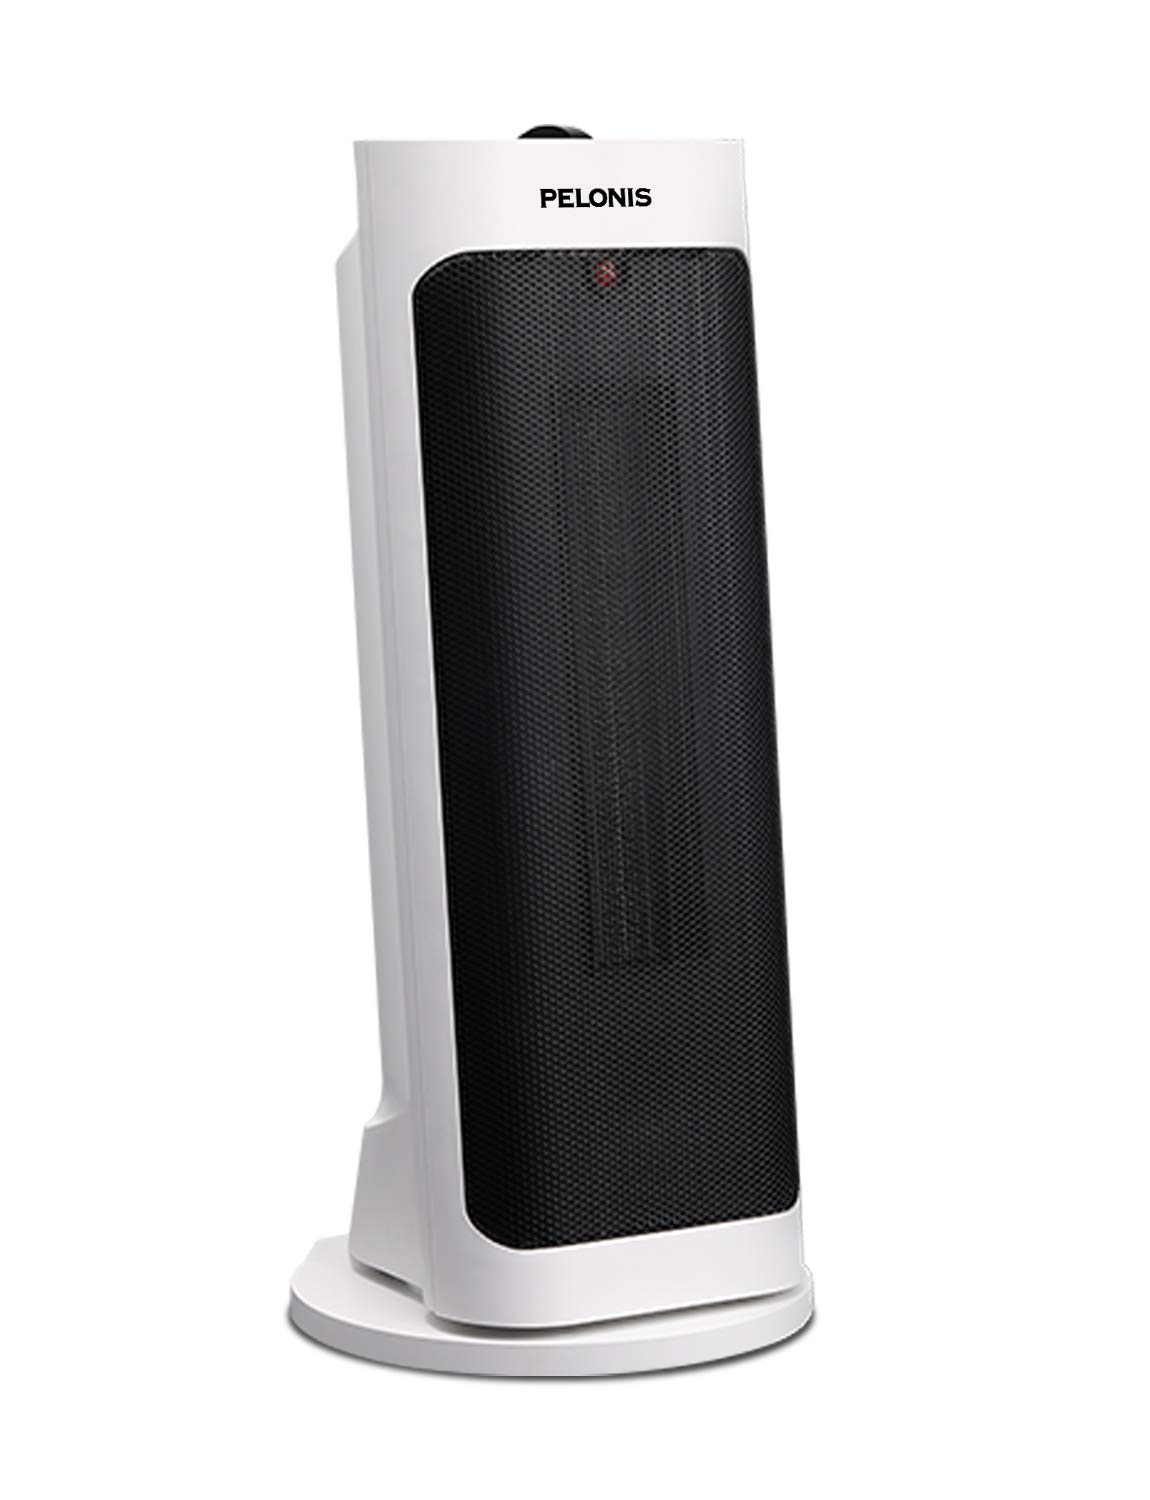 Pelonis PH-19J Pisa Tower Portable Ceramic Space Heater with Wide 1500W Fast Heating, Programmable Thermostat, Easy Control, Oscillation, Over Heating Tip-Over Switch Protection Function, White